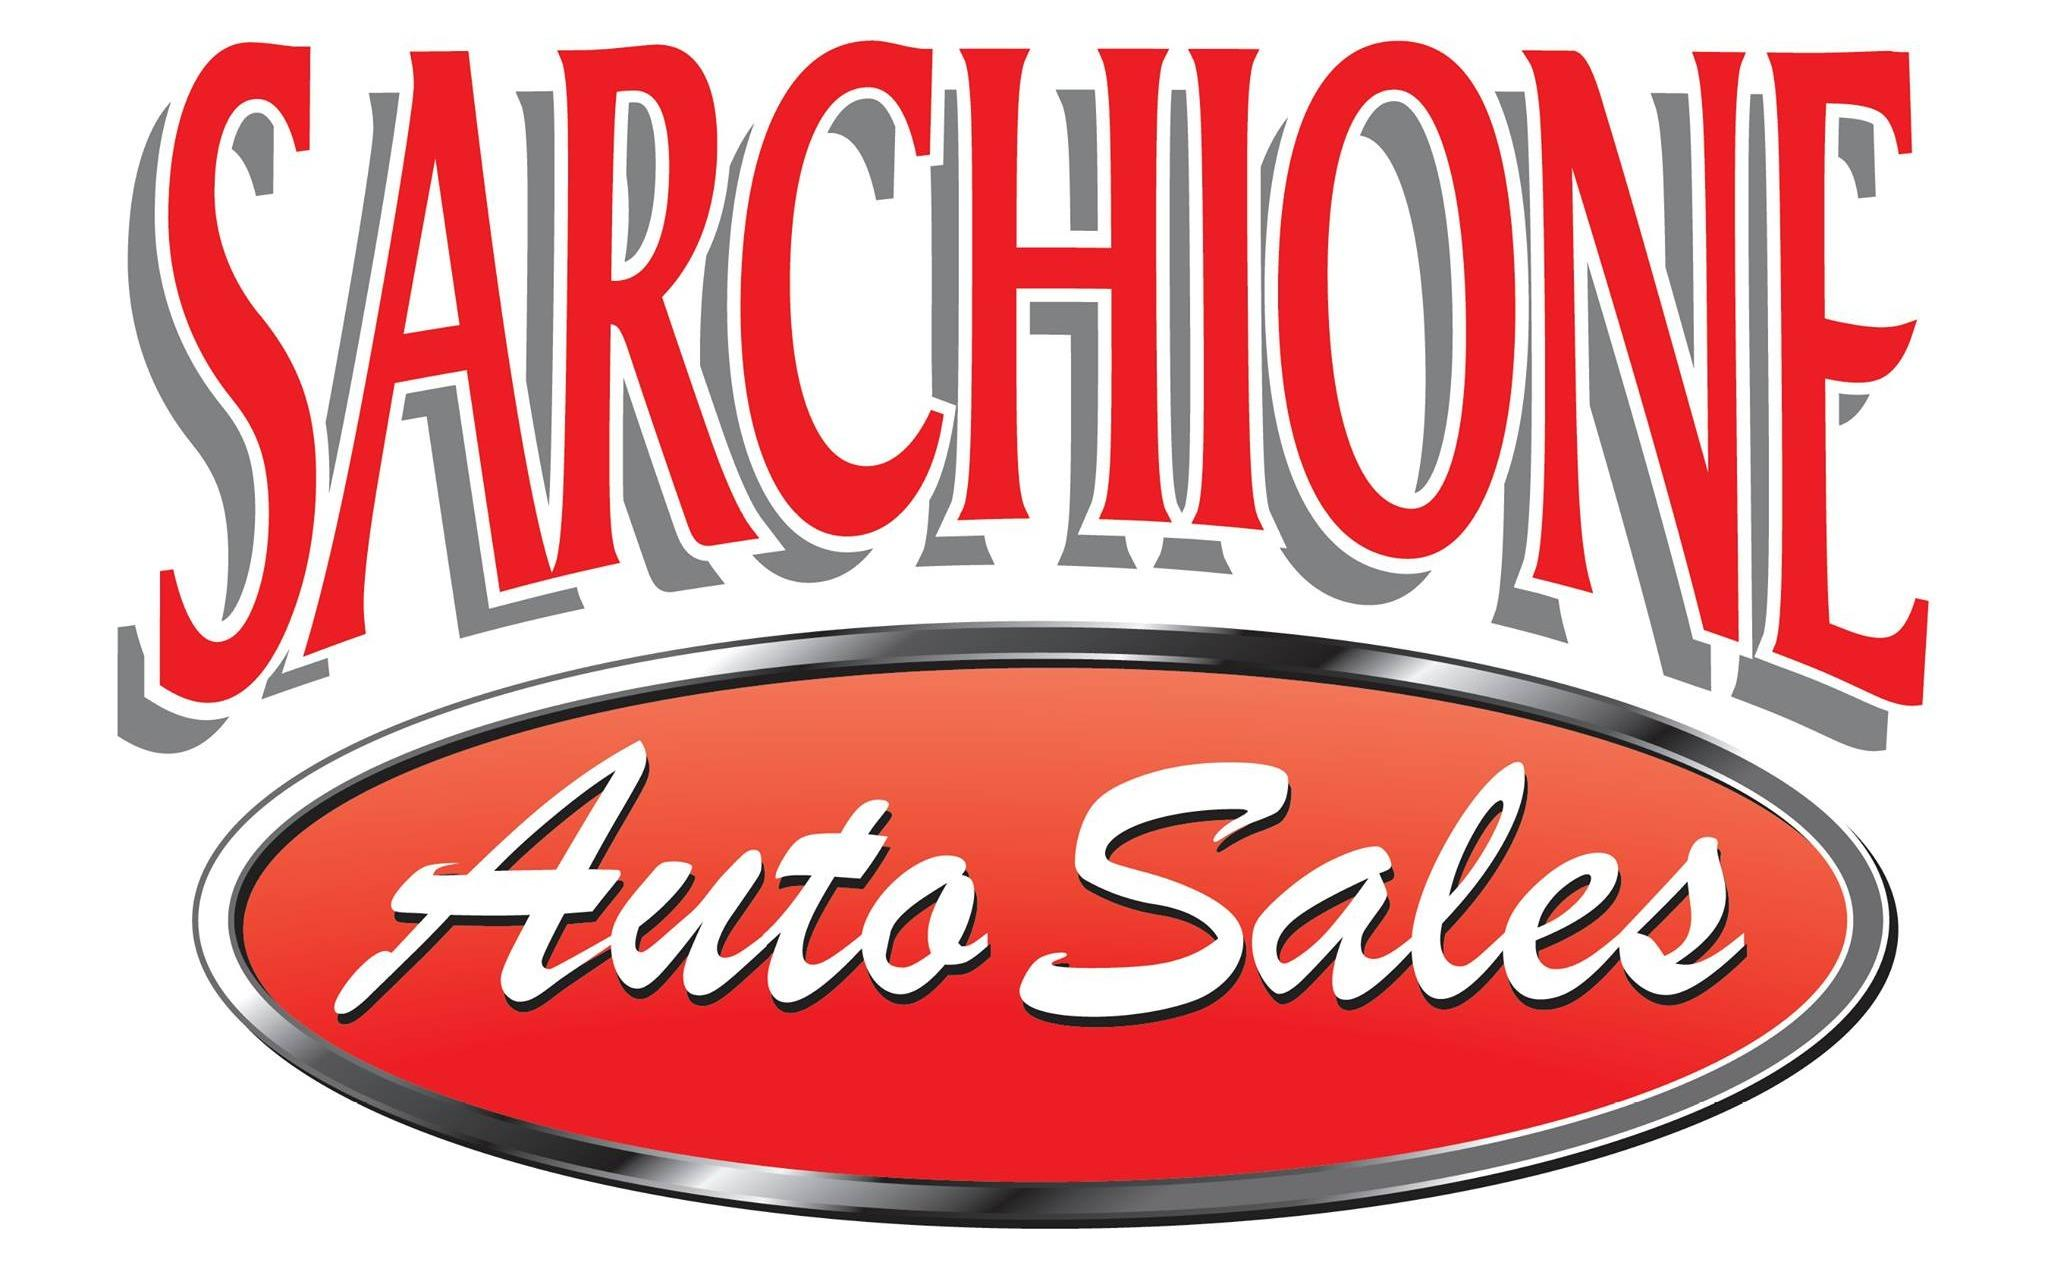 sarchione auto sales inventory available vehicles for sale youngstown ohio. Black Bedroom Furniture Sets. Home Design Ideas